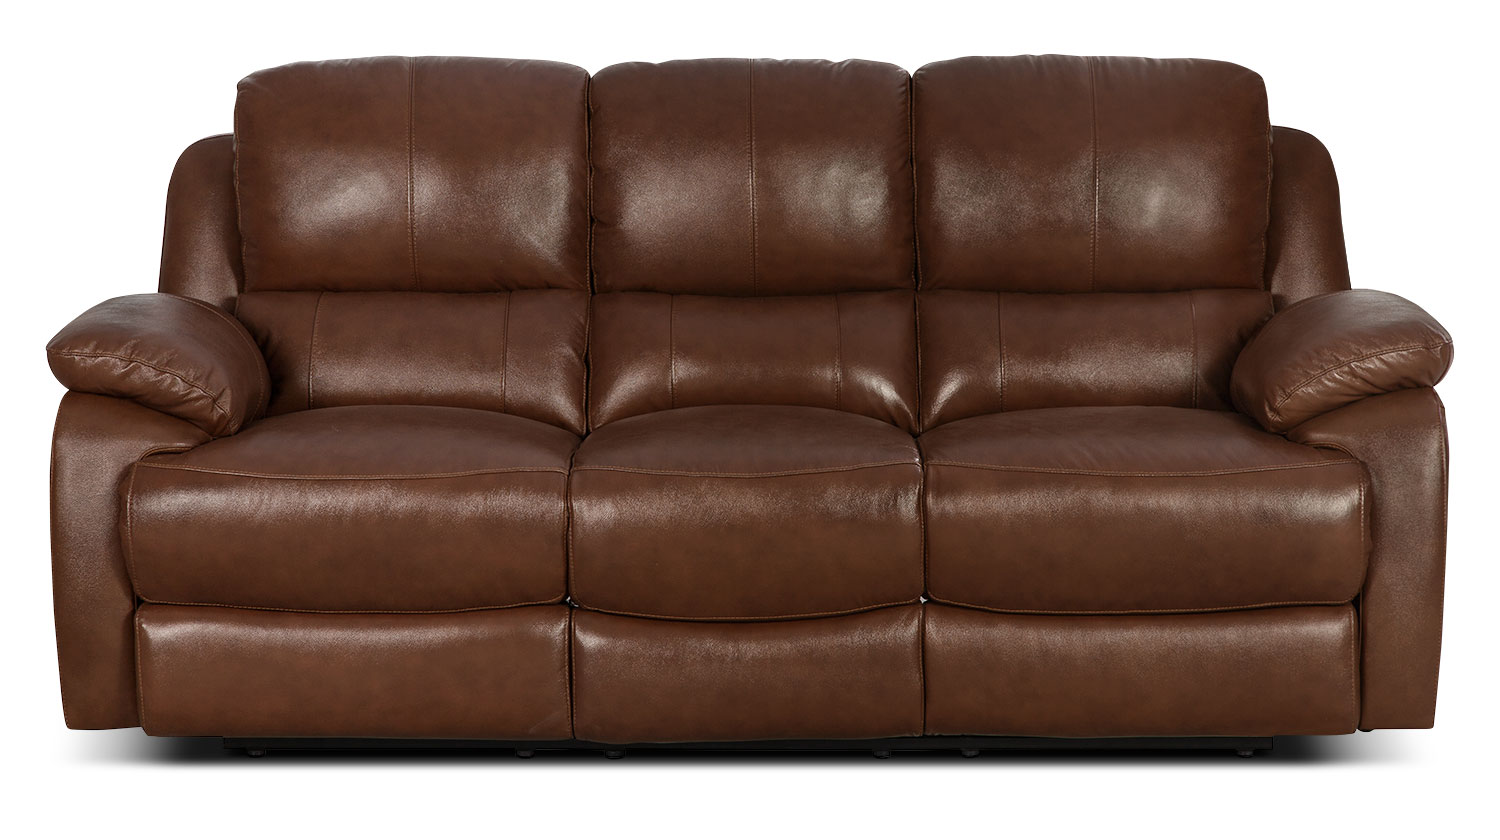 Living Room Furniture - Cairo Genuine Leather Reclining Sofa – Brown